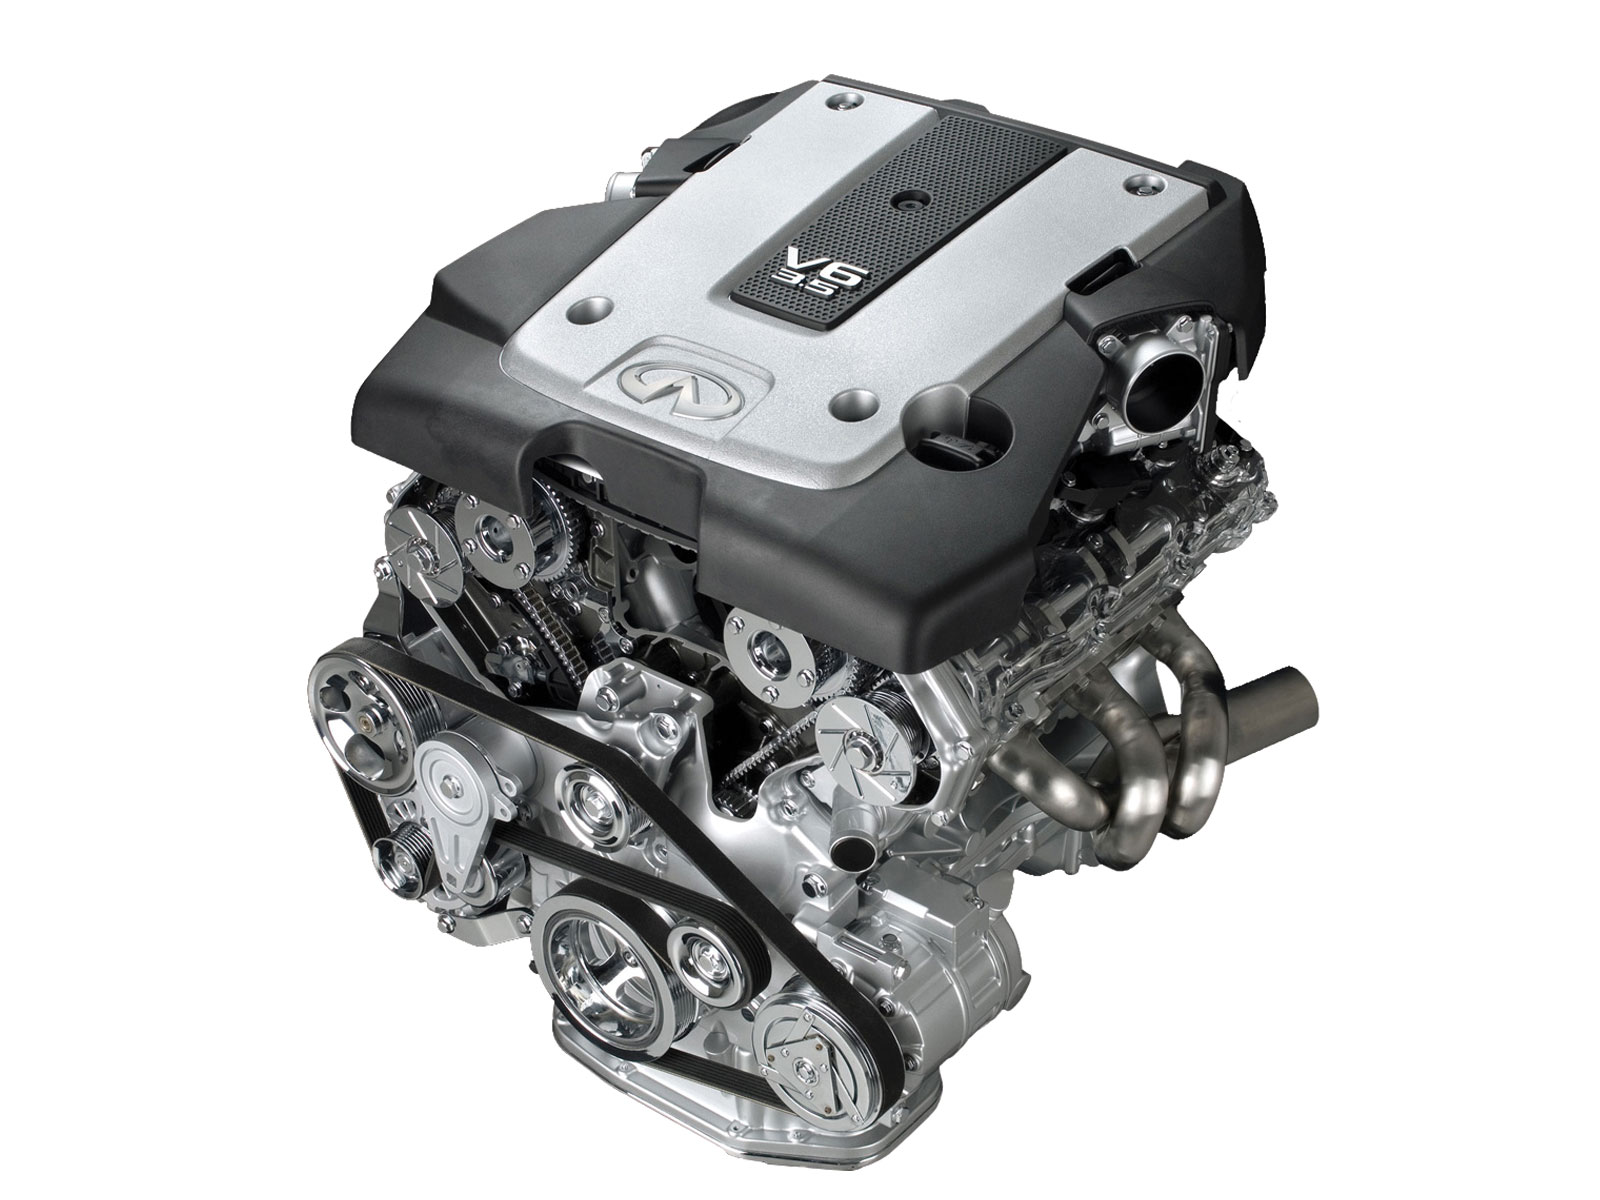 Buick regal lhu engines for gs vehicles now available for for Buick motors for sale